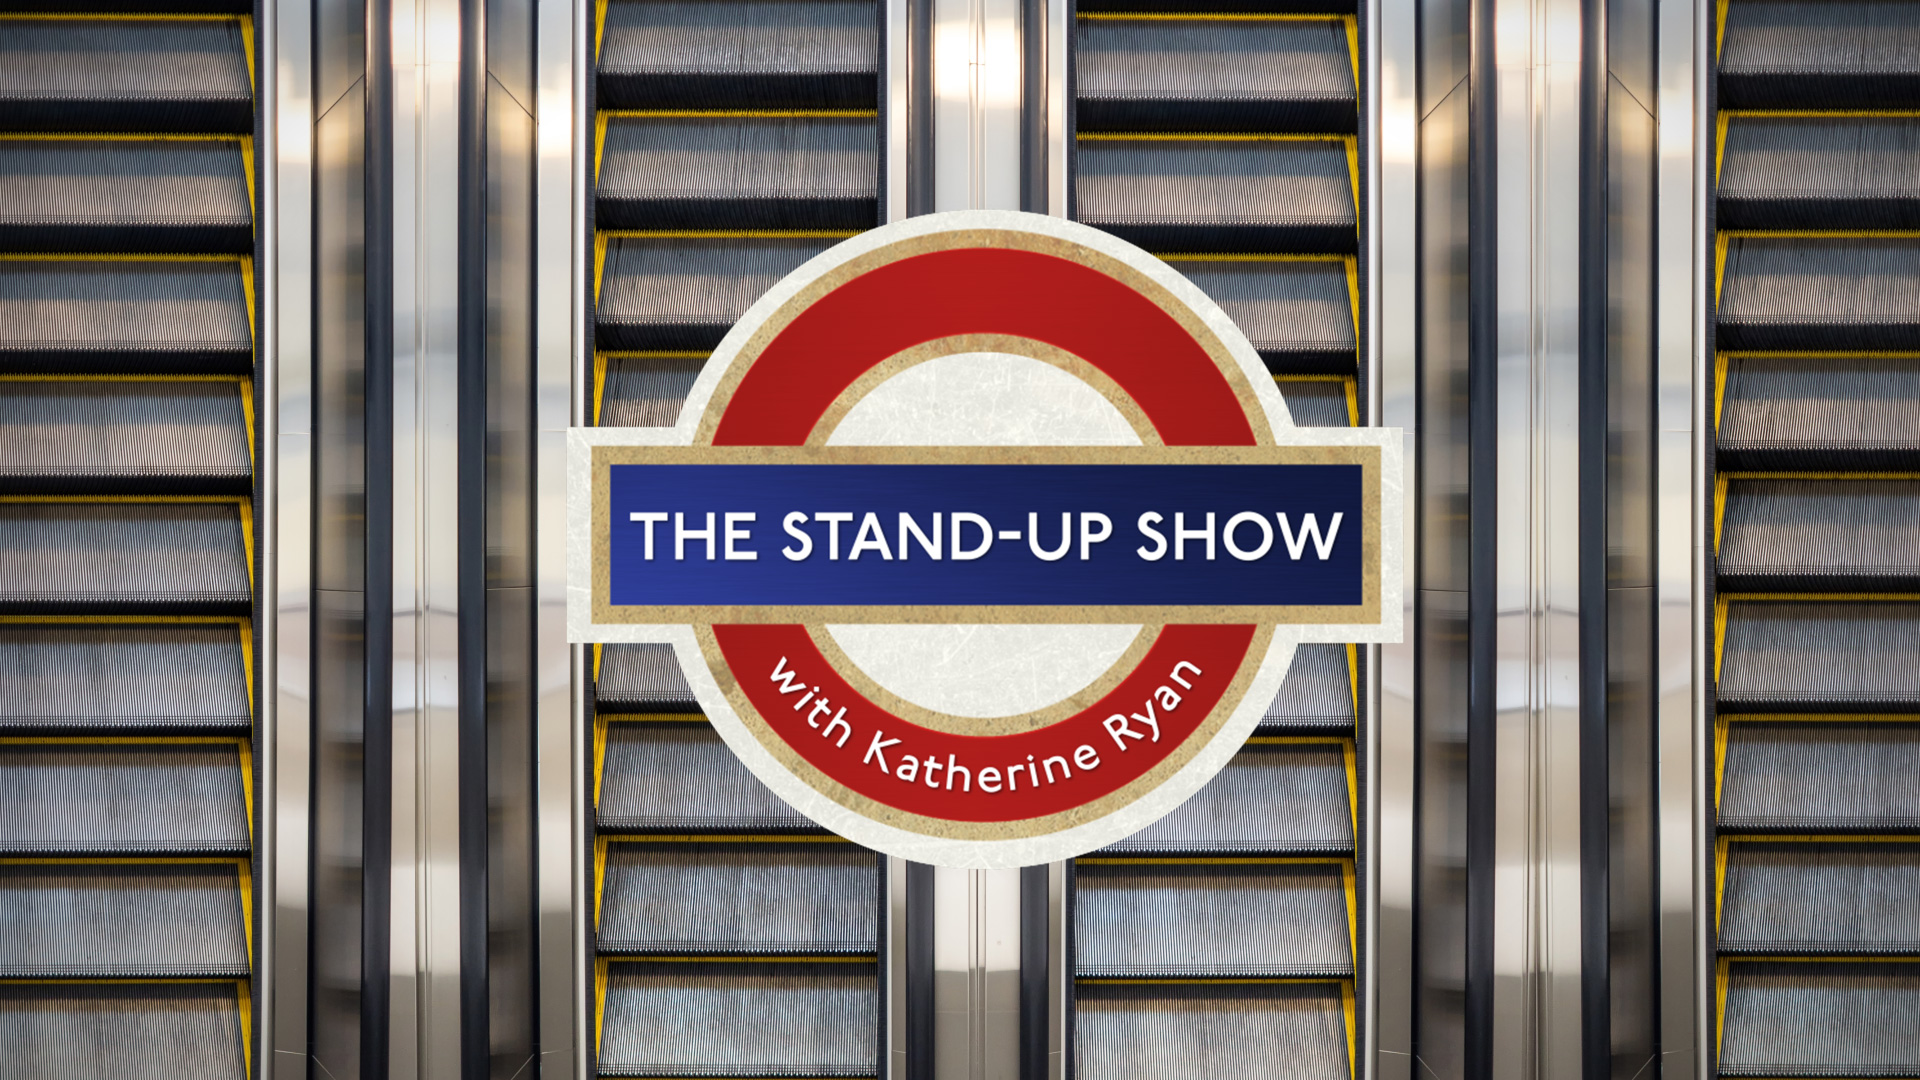 The Stand-up Show